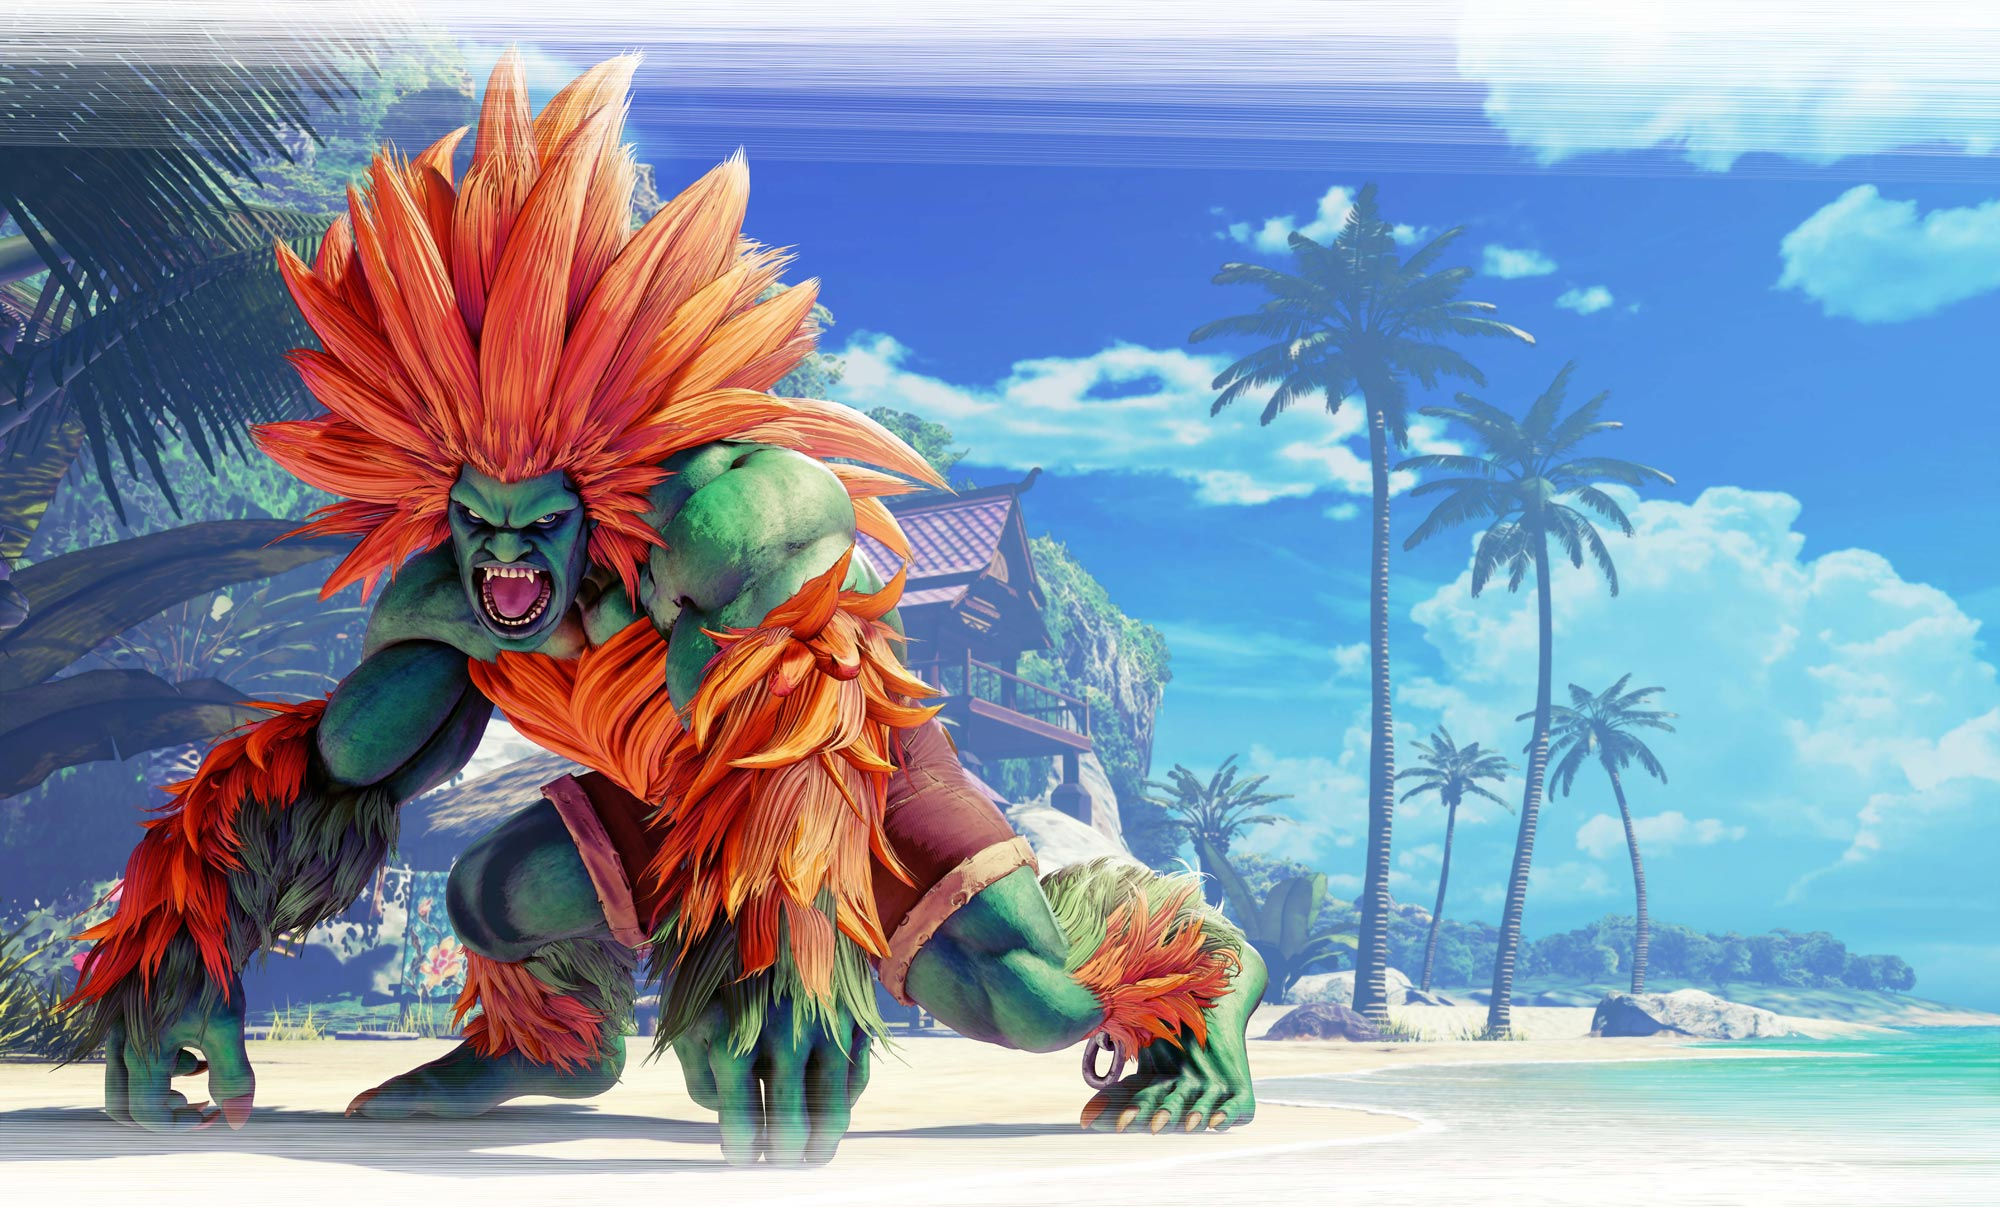 Blanka in Street Fighter 5: Arcade Edition 9 out of 11 image gallery